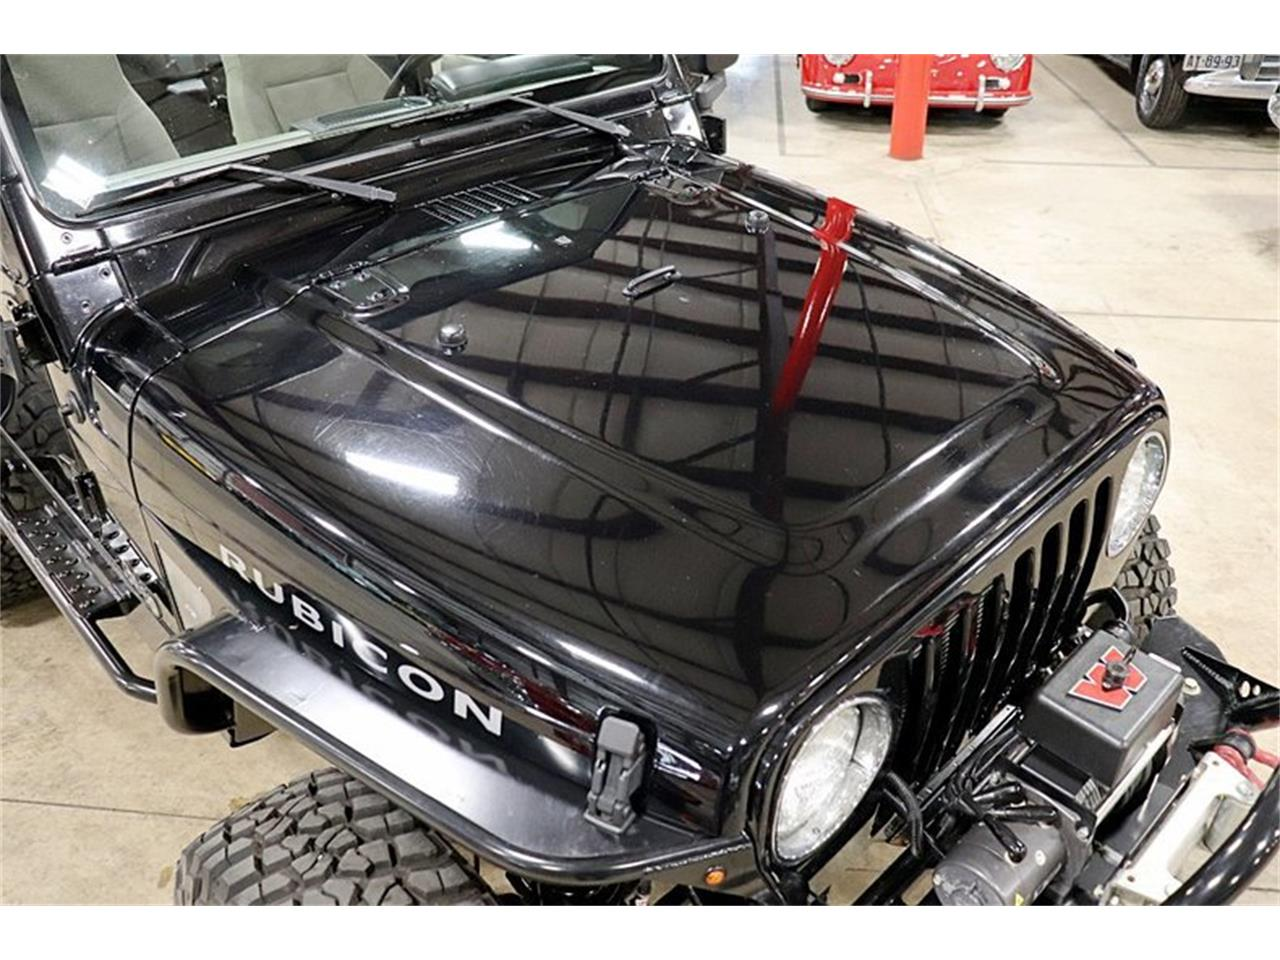 2005 Jeep Wrangler (CC-1211326) for sale in Kentwood, Michigan